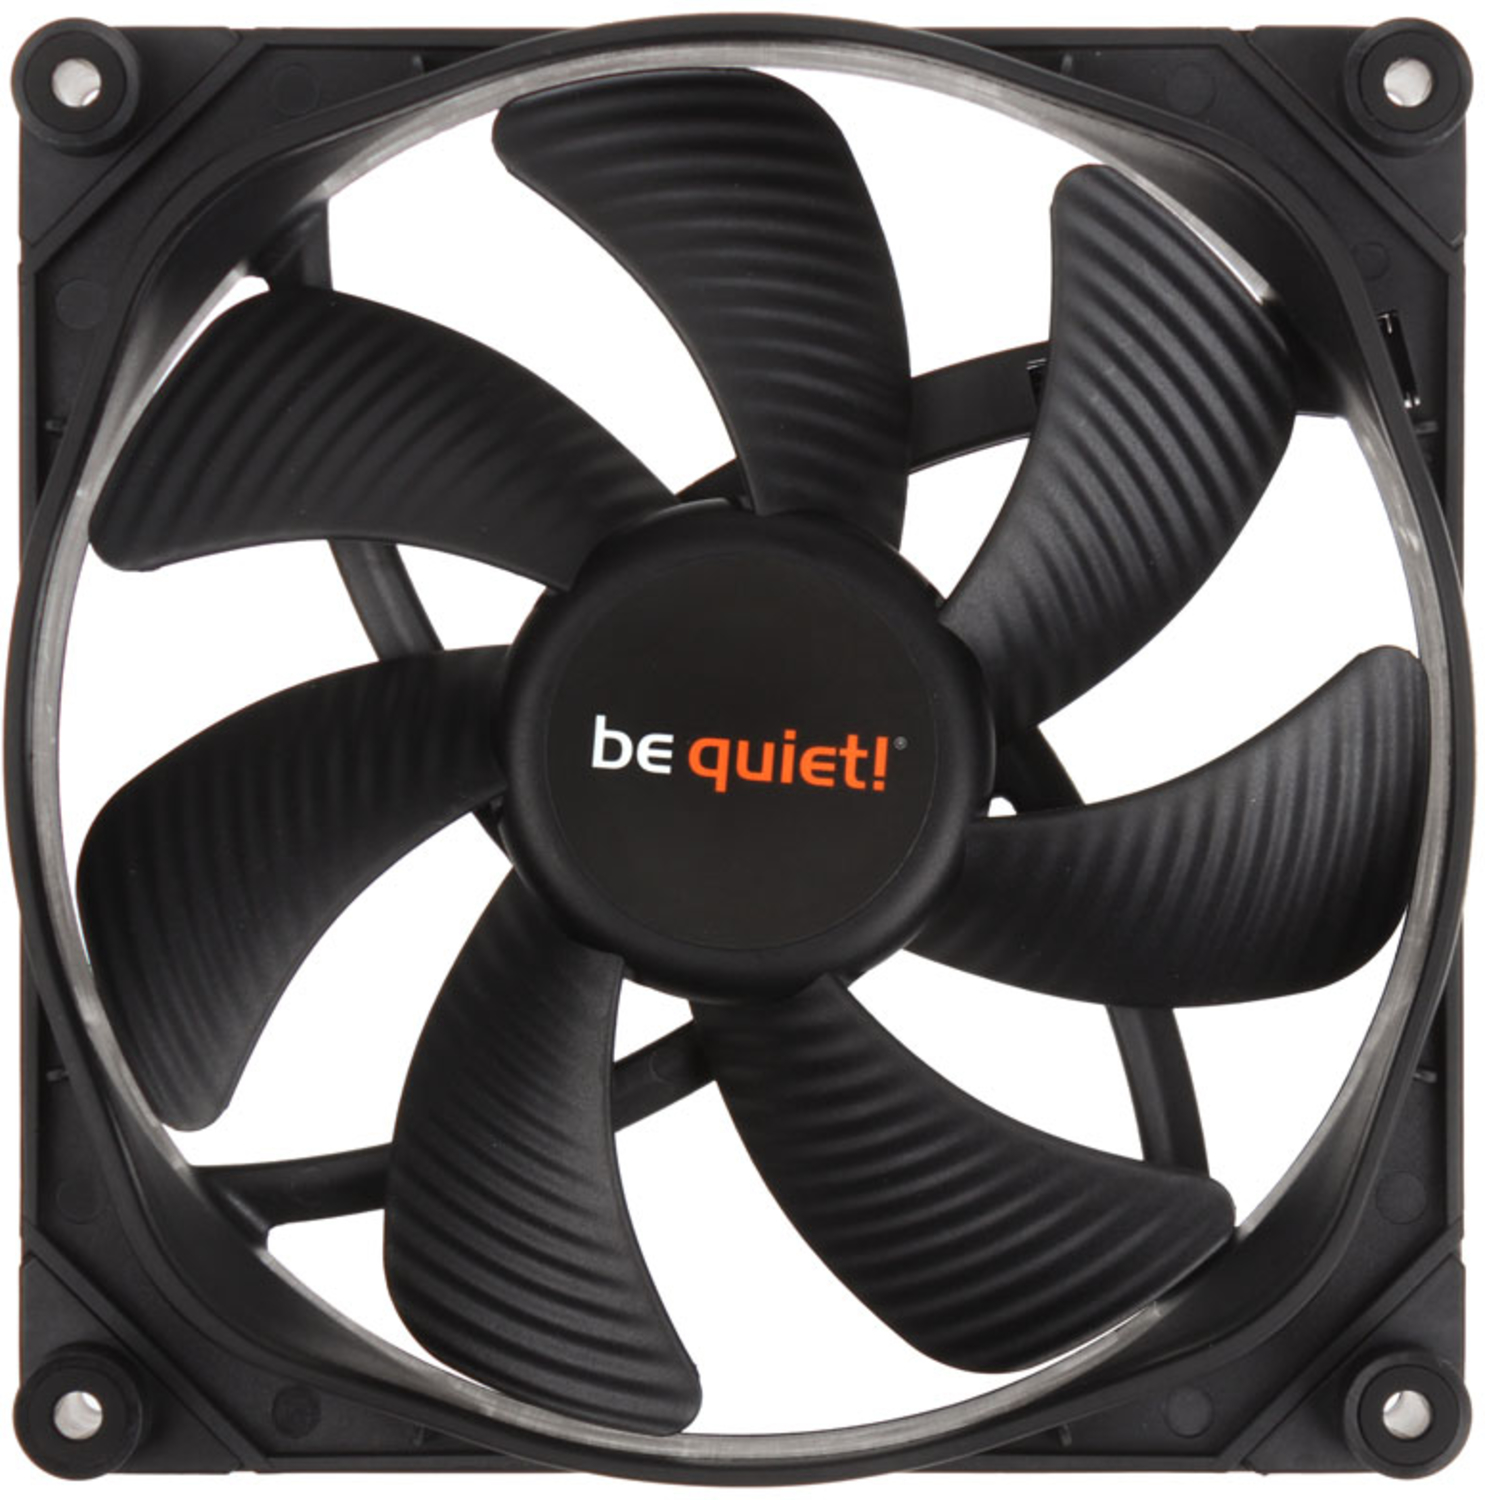 Ventoinha be quiet! Silent Wings 3 140mm